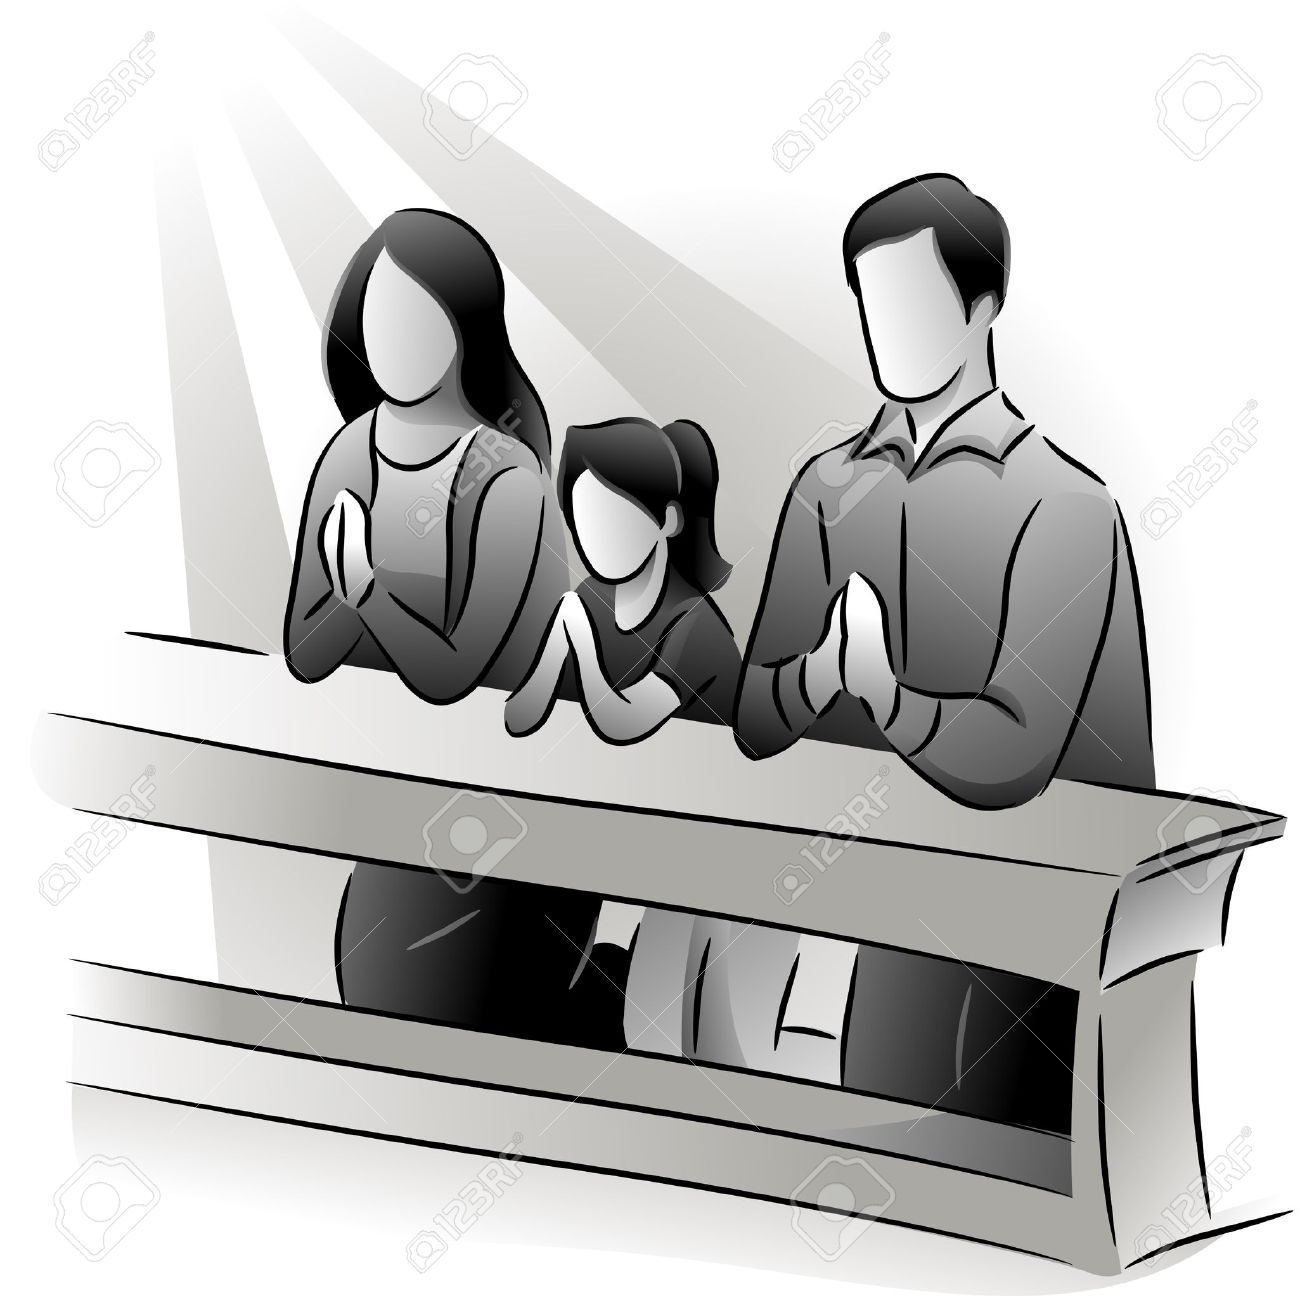 Black And White Illustration Featuring A Family Praying Together